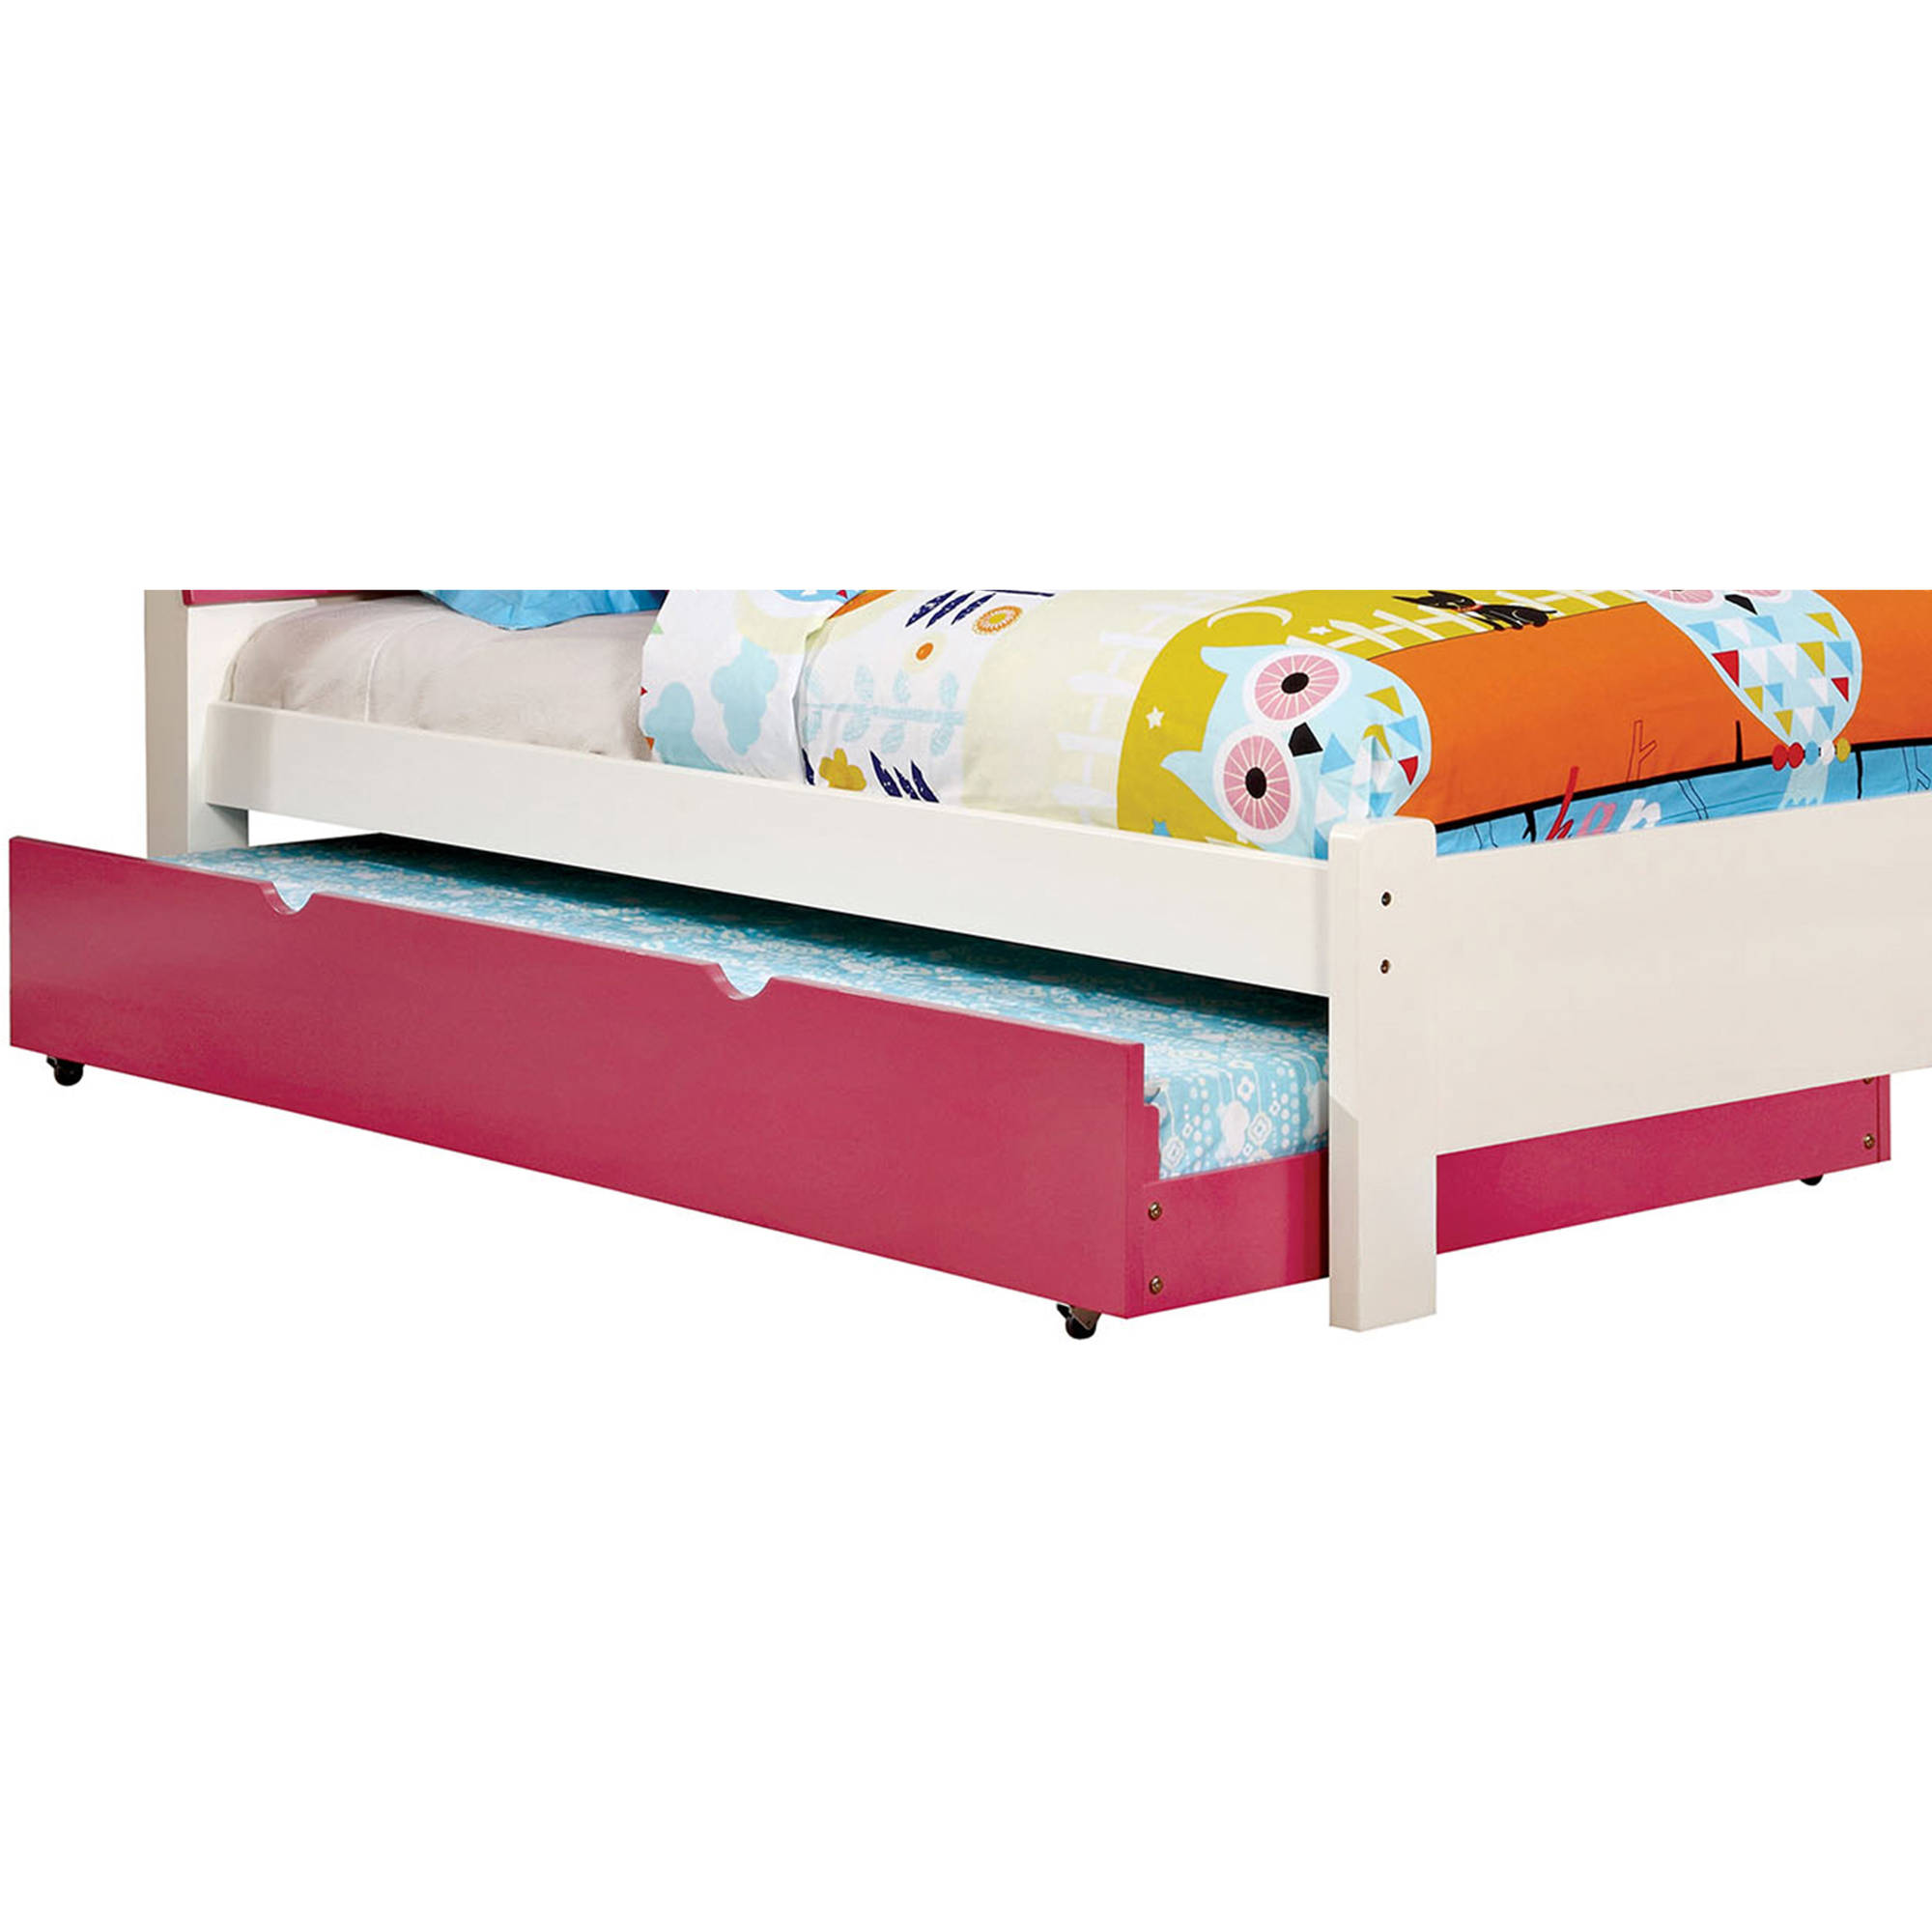 Kimmel Twin Trundle Bed, Pink by